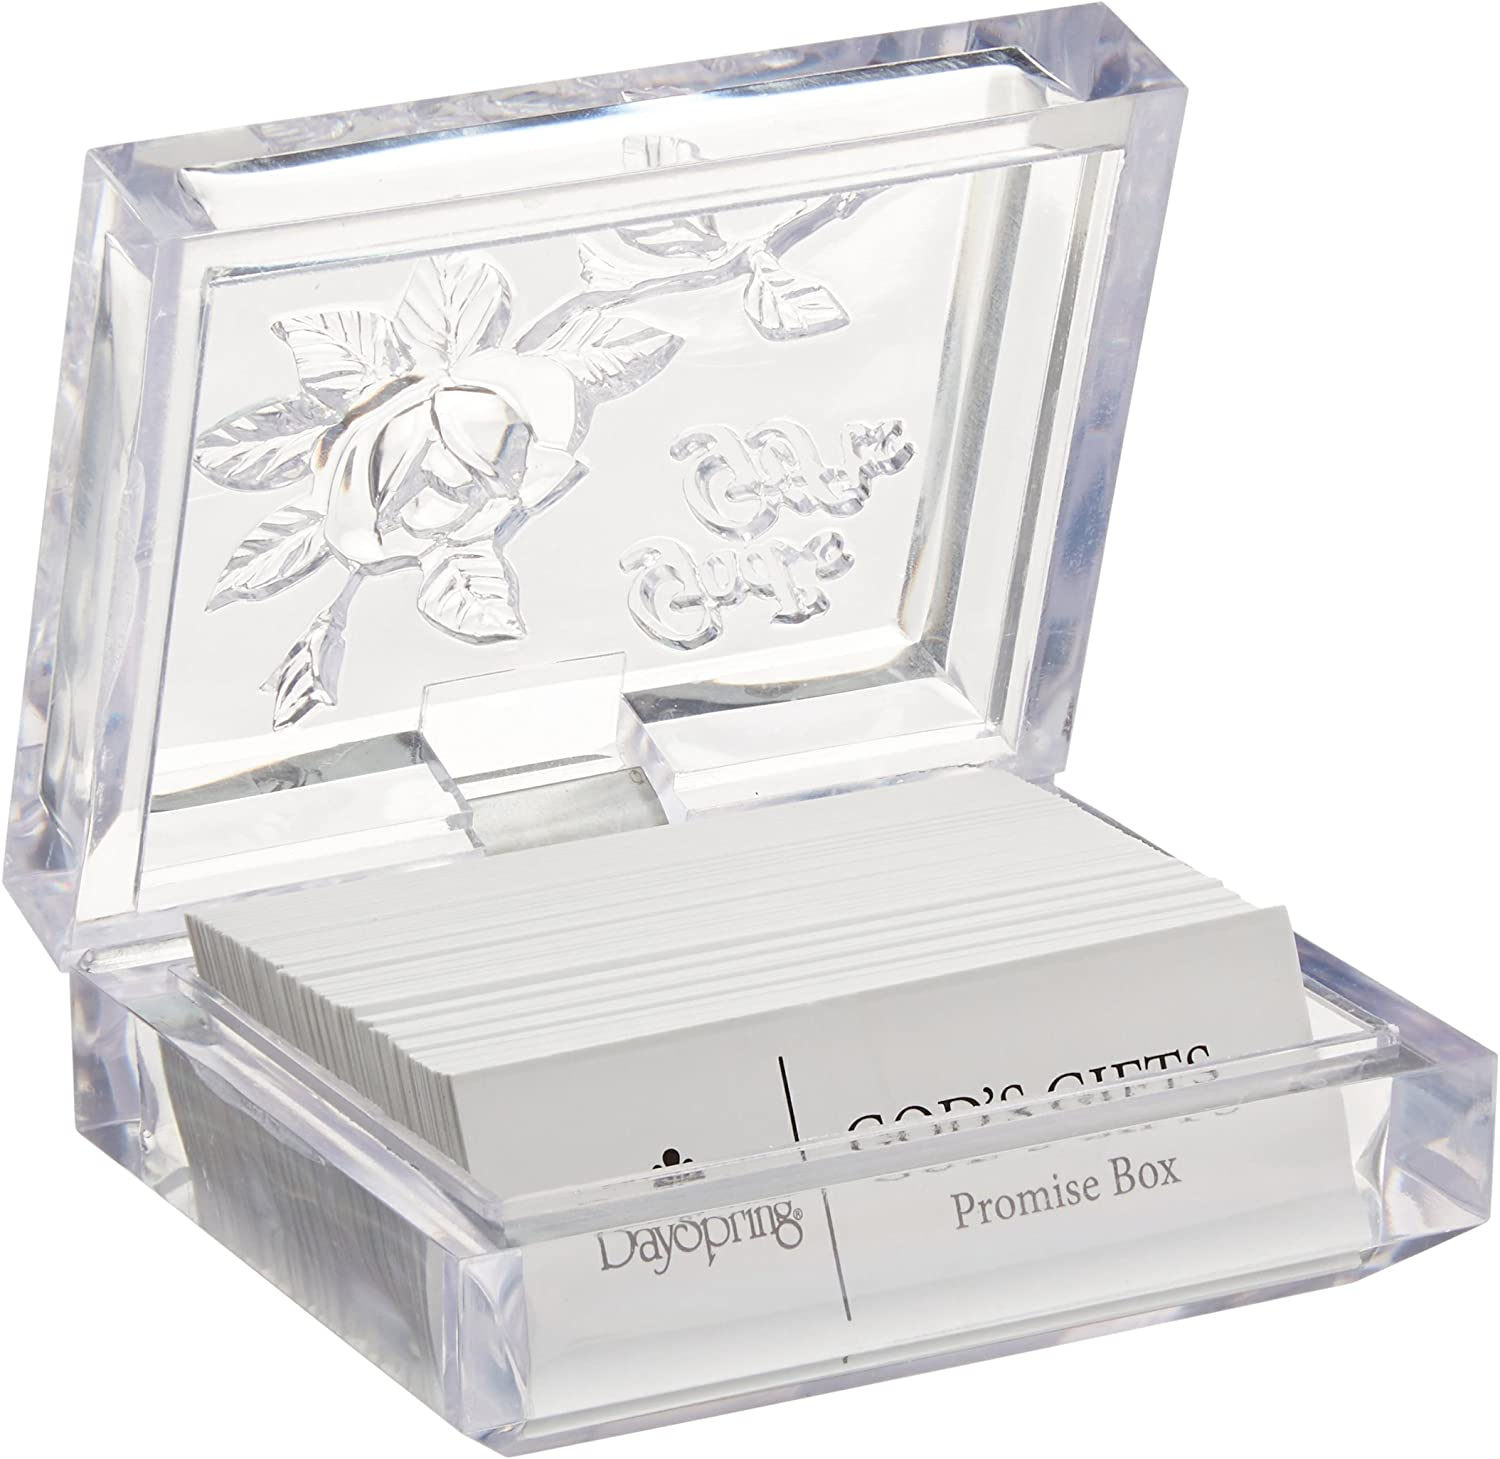 "Dayspring Inspirational Promise Box - God's Gifts, Clear (T9652), 3 1/2"" x 2 3/4"" x 2 3/4"""